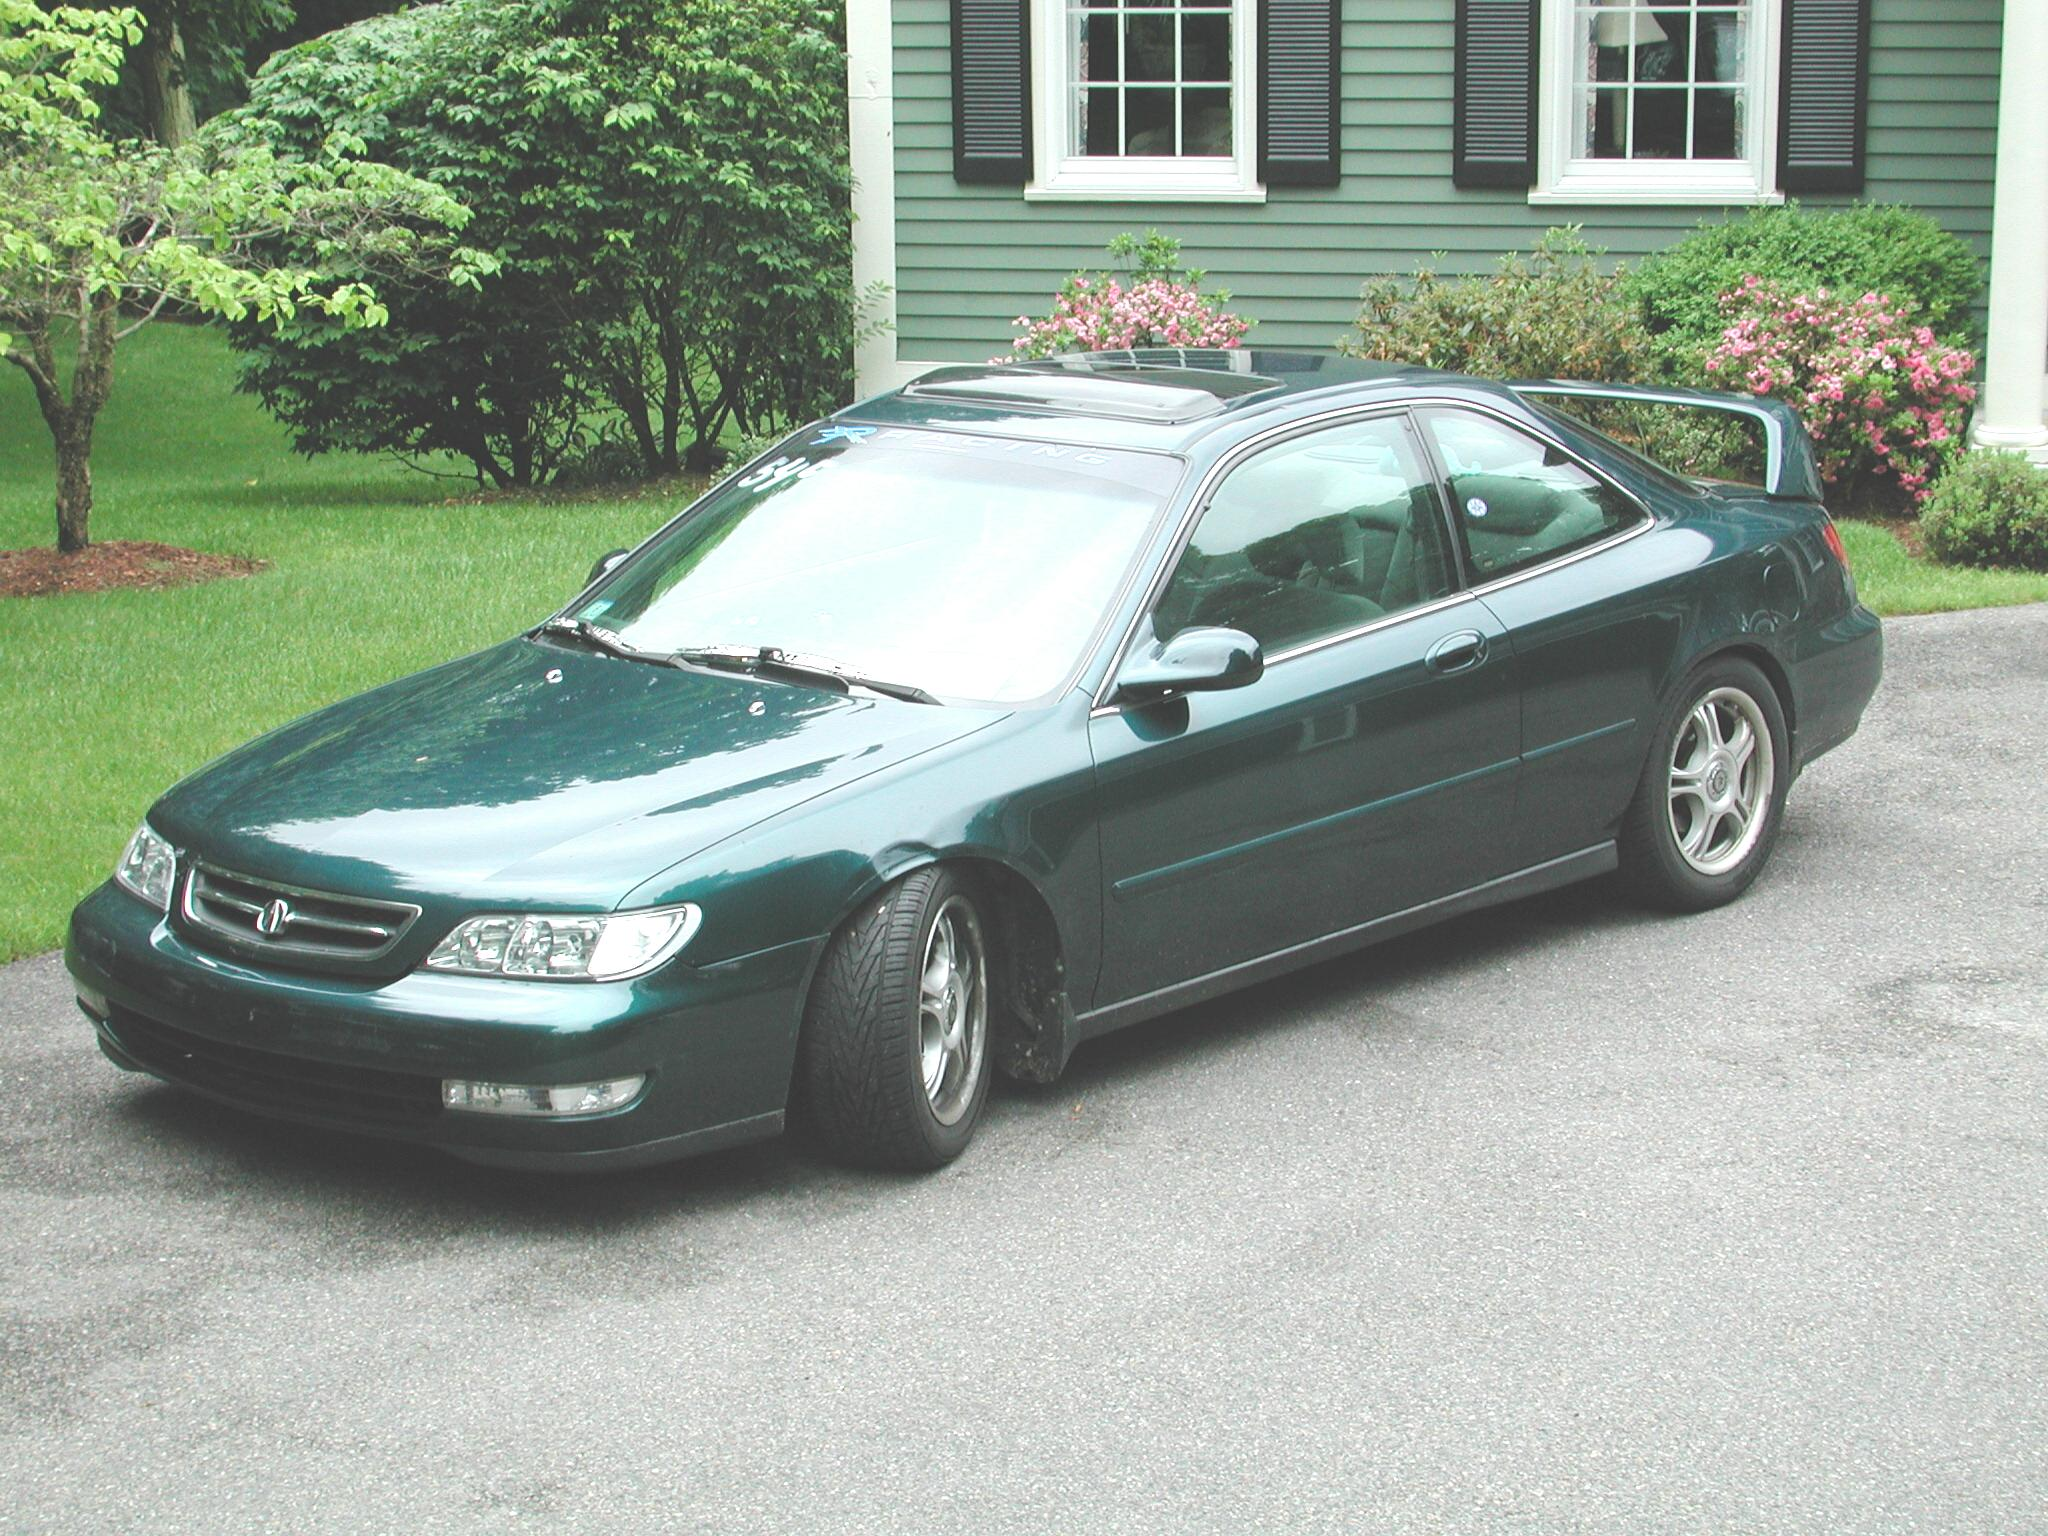 1997 Acura Cl Image 5